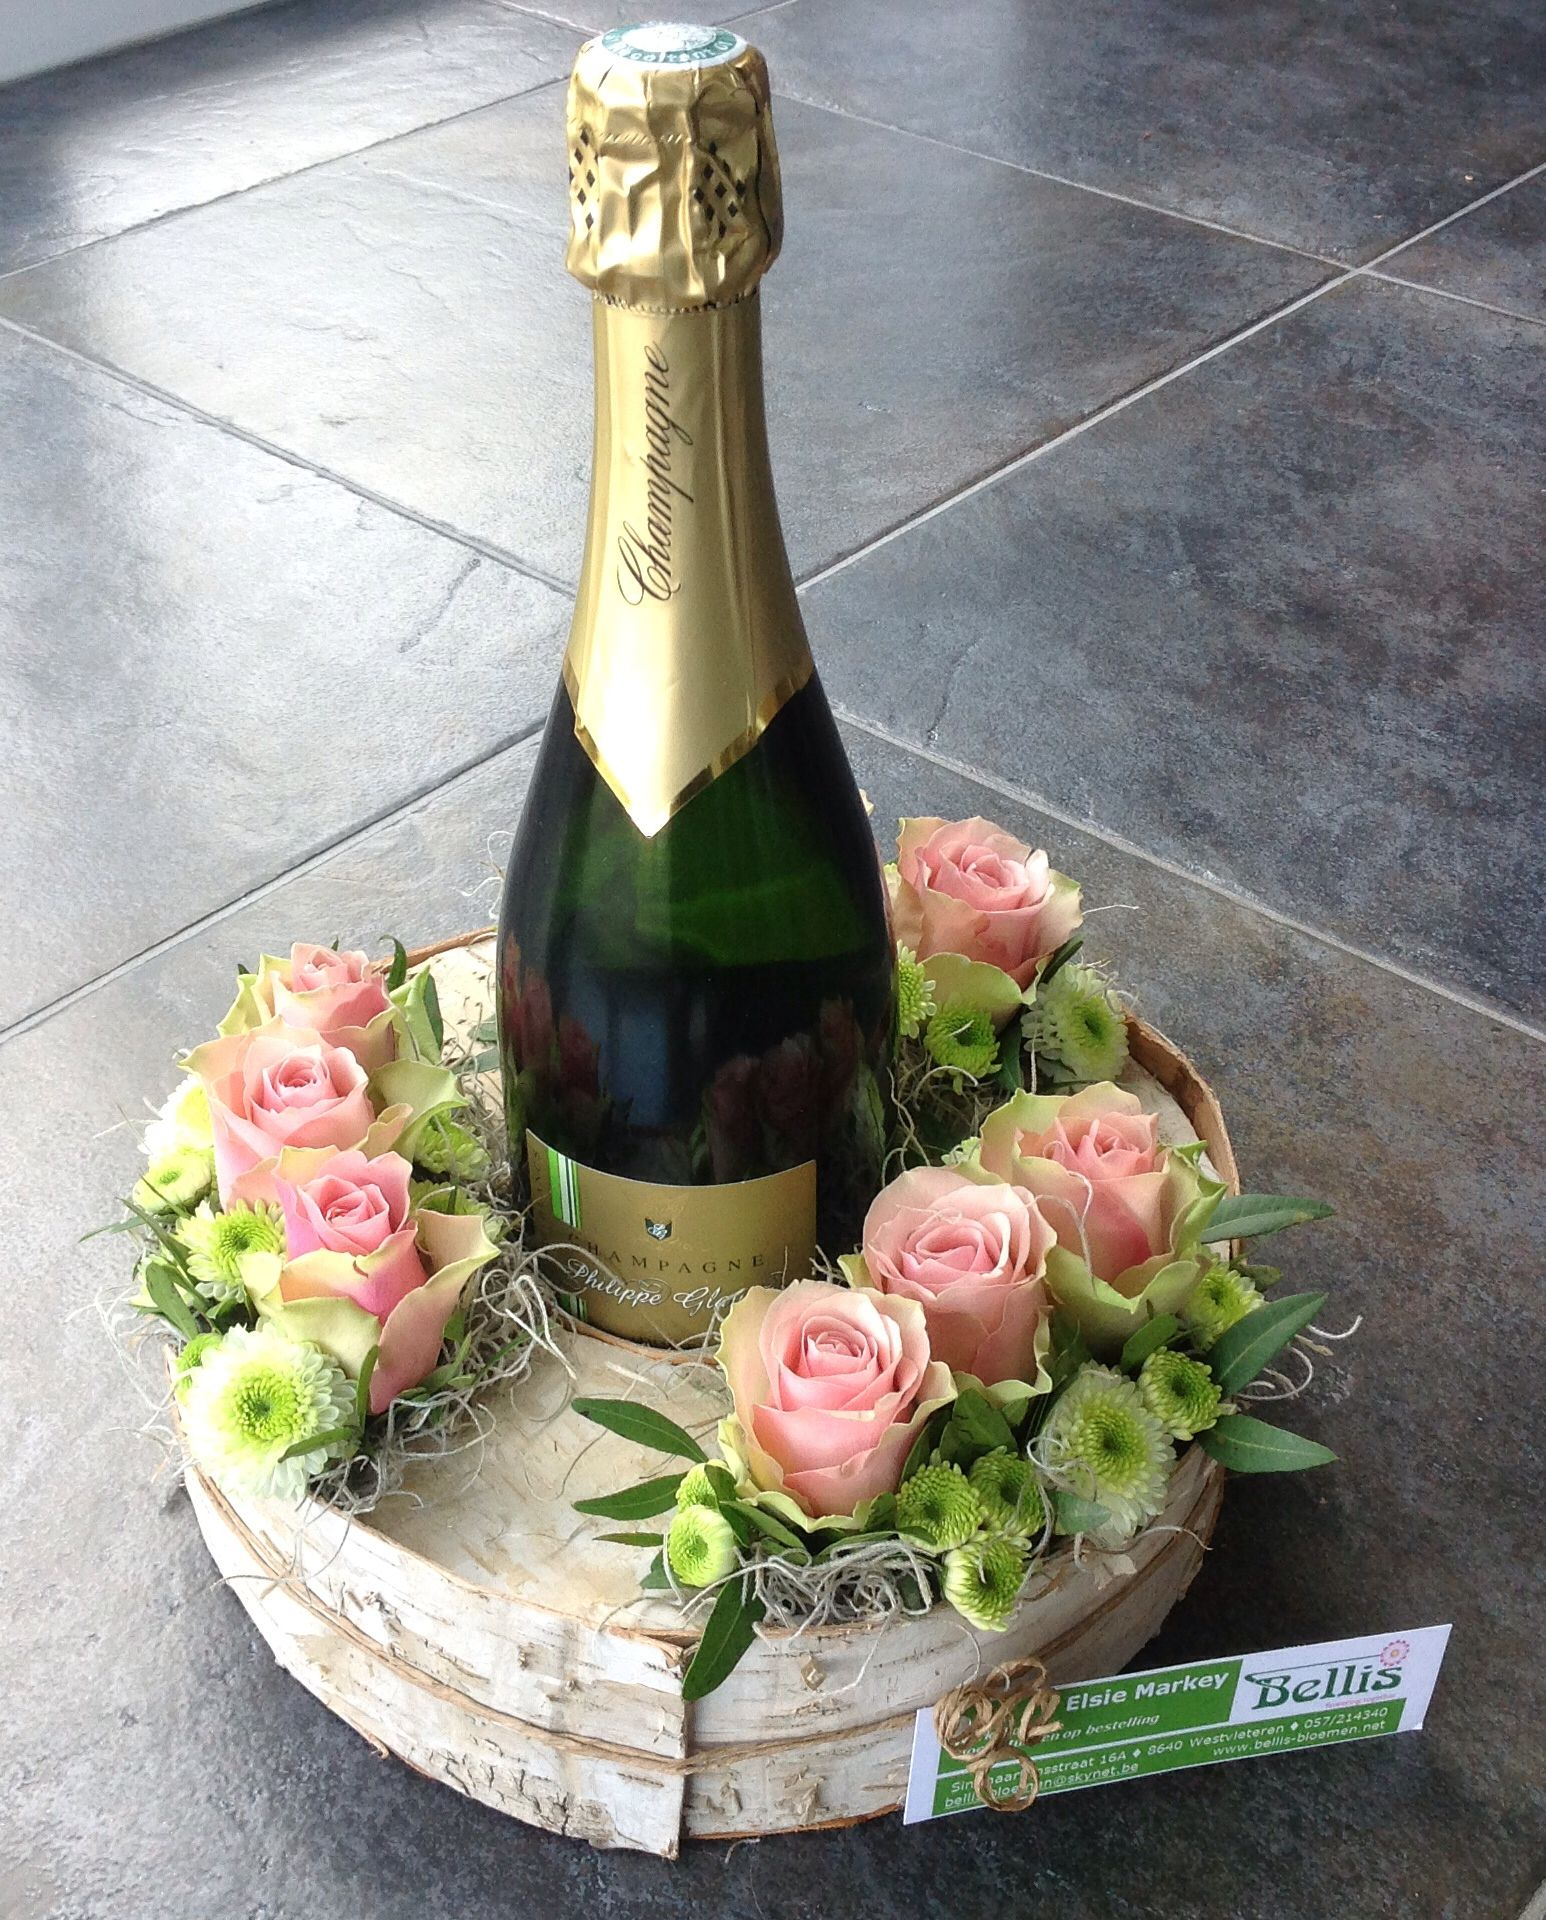 Flower Arrangements In Wine Bottles: Champagne Fles Decoratief Verpakt.